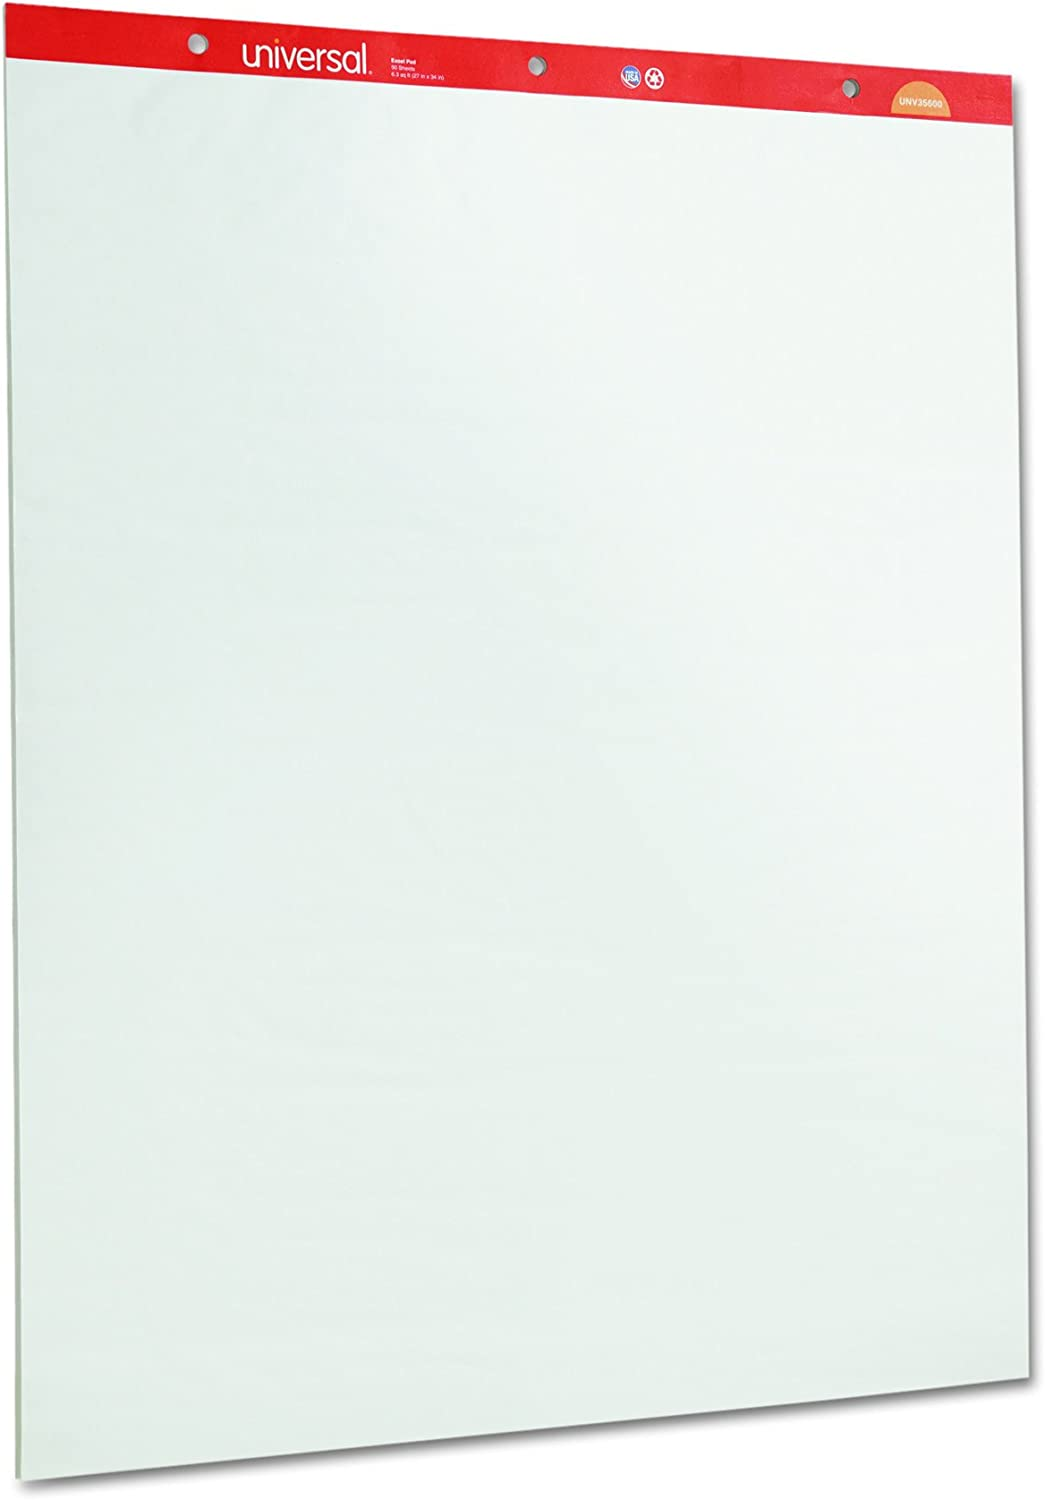 Universal 35600 Recycled Easel Pads, Unruled, 27 x 34, White, 50 Sheet (Case of 2) : Office Products